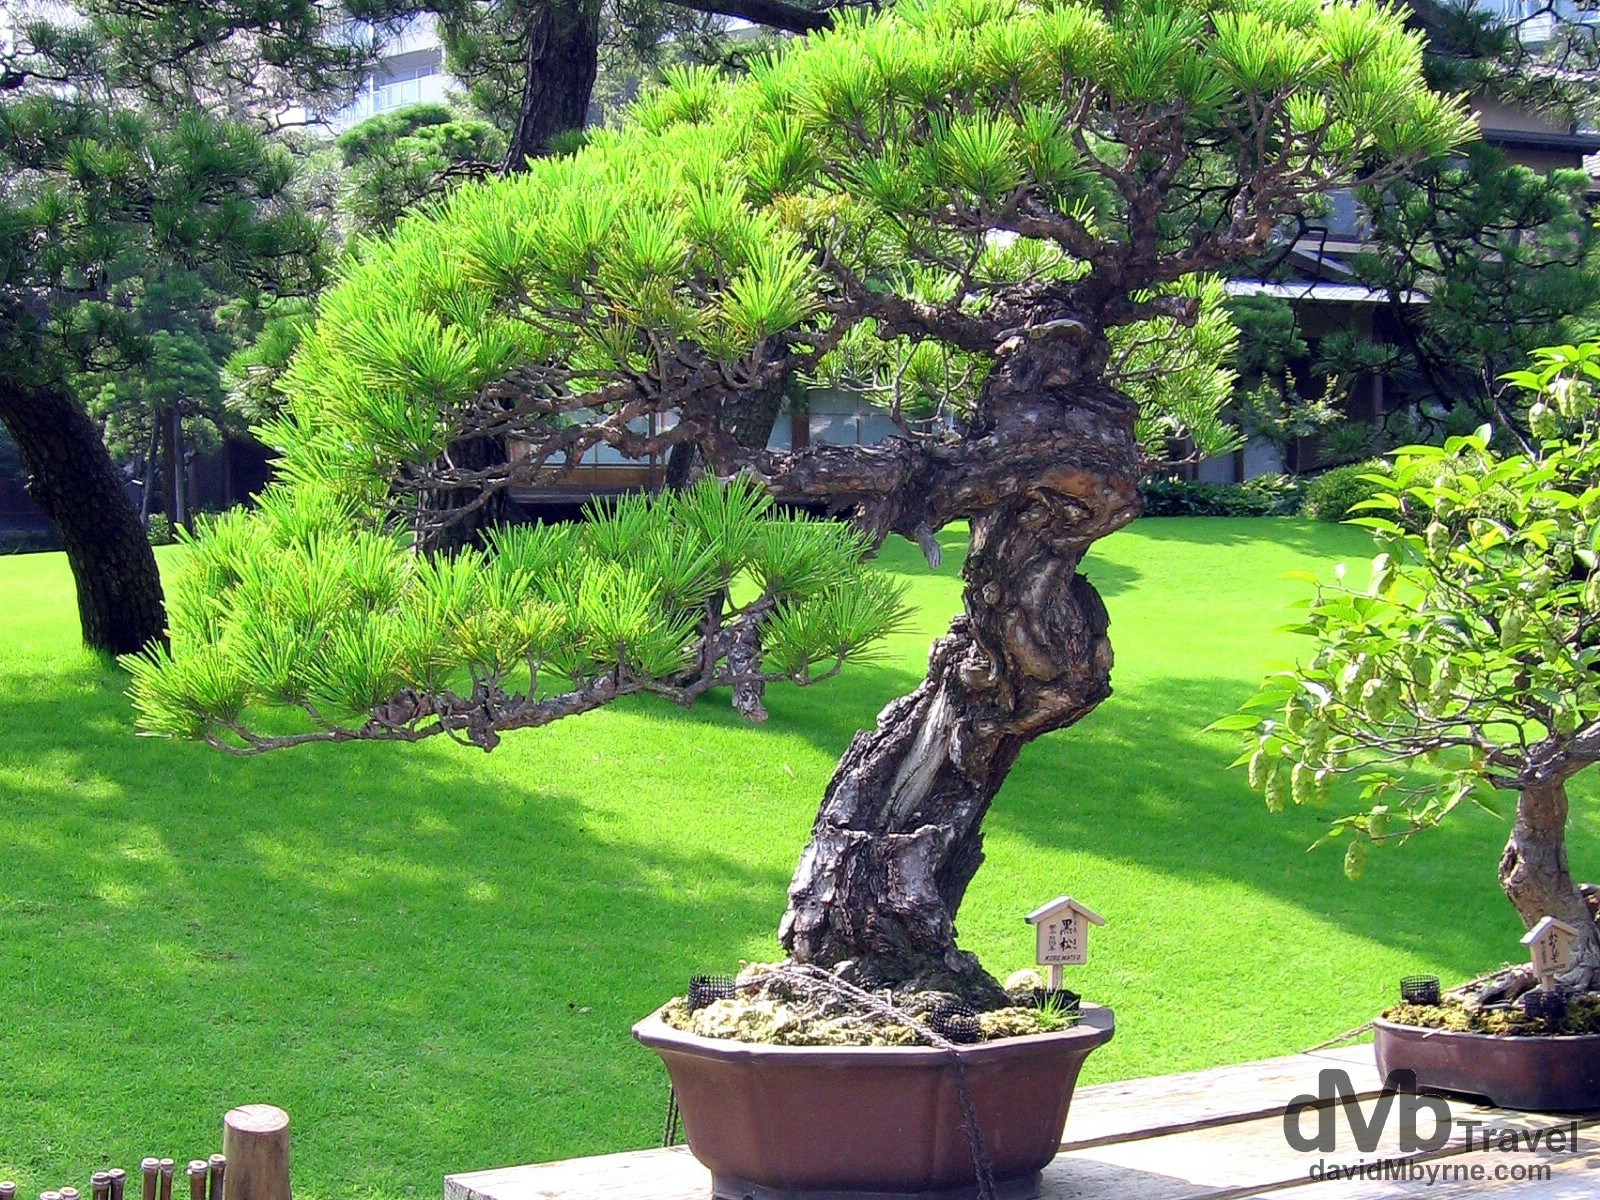 A bonsai tree in Happo-En Gardens, Tokyo, Japan. July 15th, 2005.